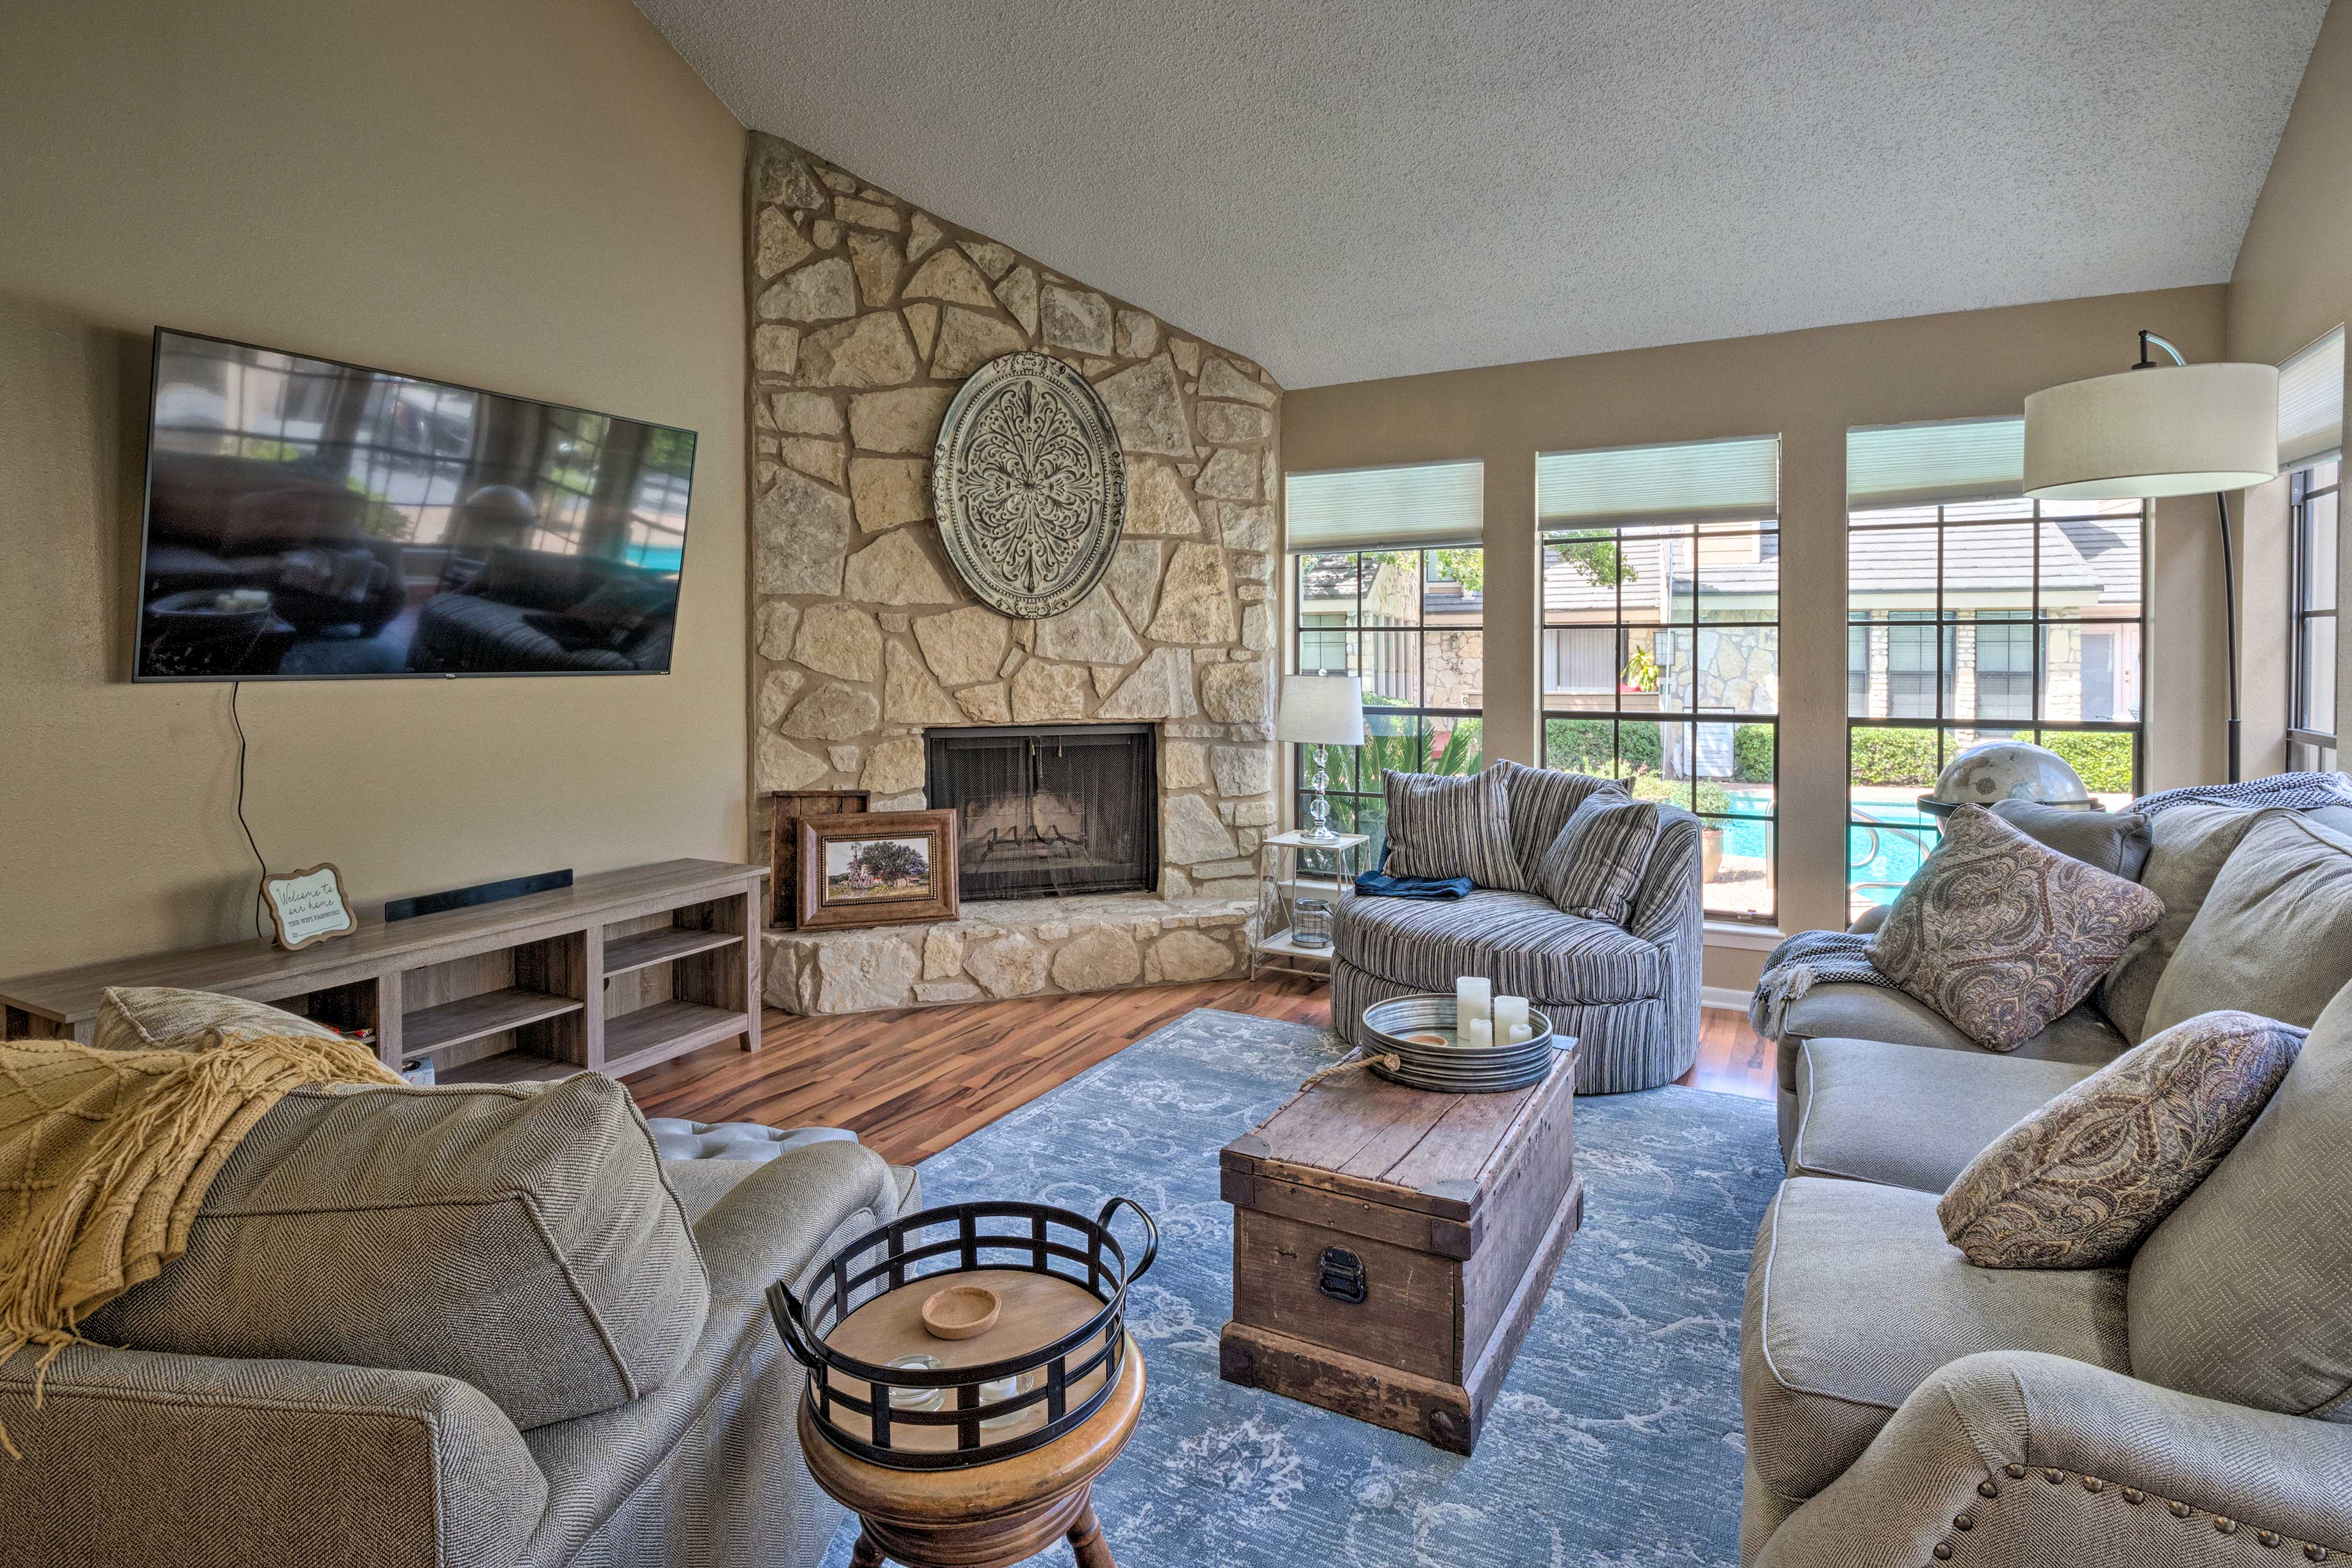 Sleeping 6, this vacation rental provides everyone with enough space.